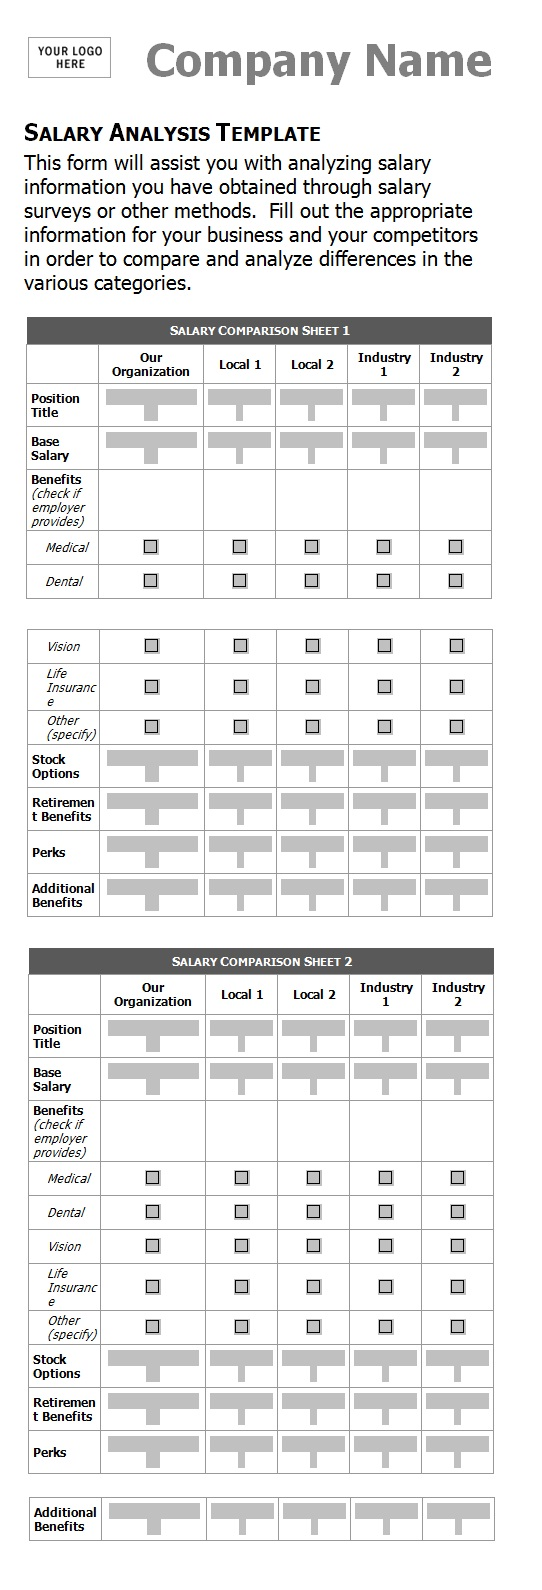 Cv template free guardian professional resumes example online cv template free guardian how to write a successful cv university of kent salary analysis form yelopaper Image collections